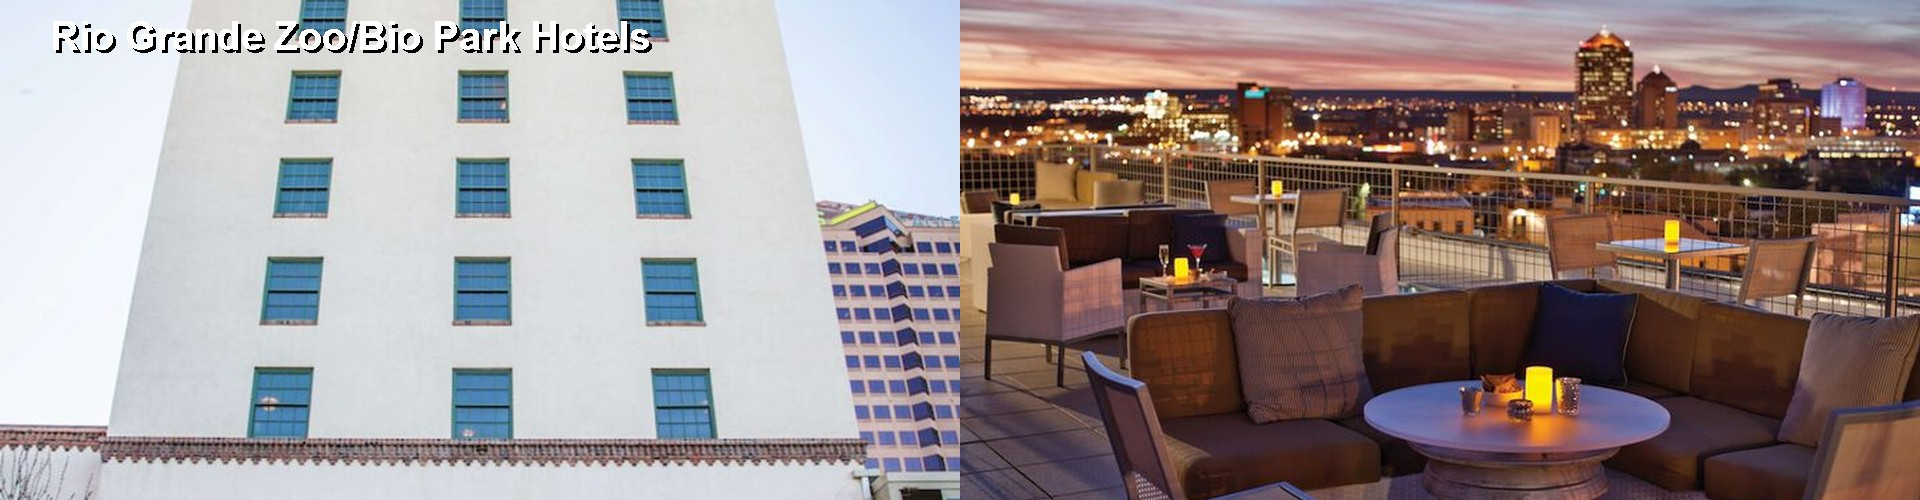 $37+ Hotels Near Rio Grande Zoo/Bio Park in Albuquerque NM